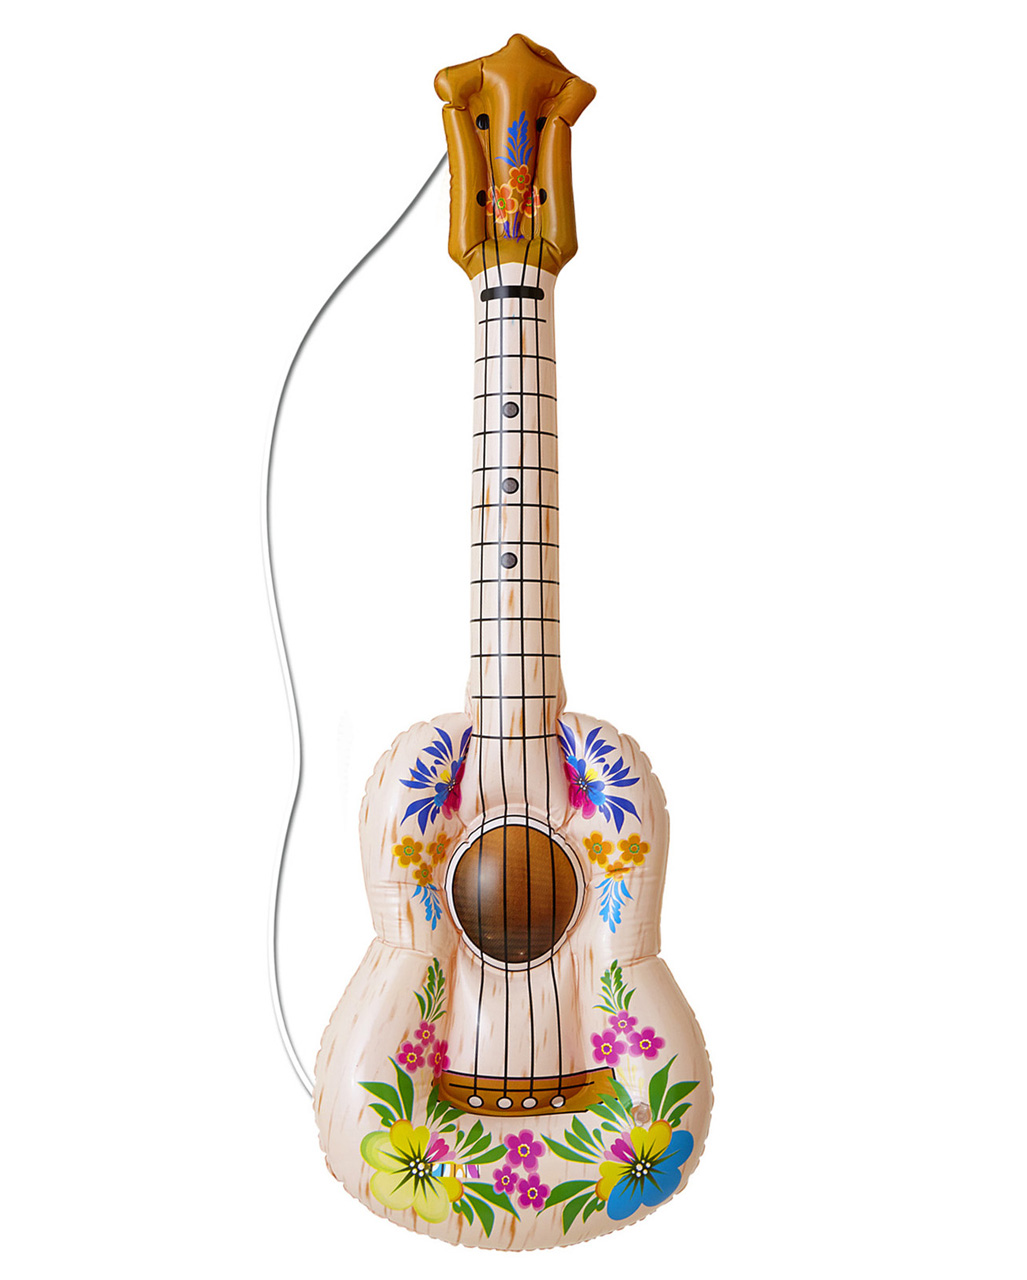 Hawaii Inflatable Guitar As A Hawaii Party Decoration